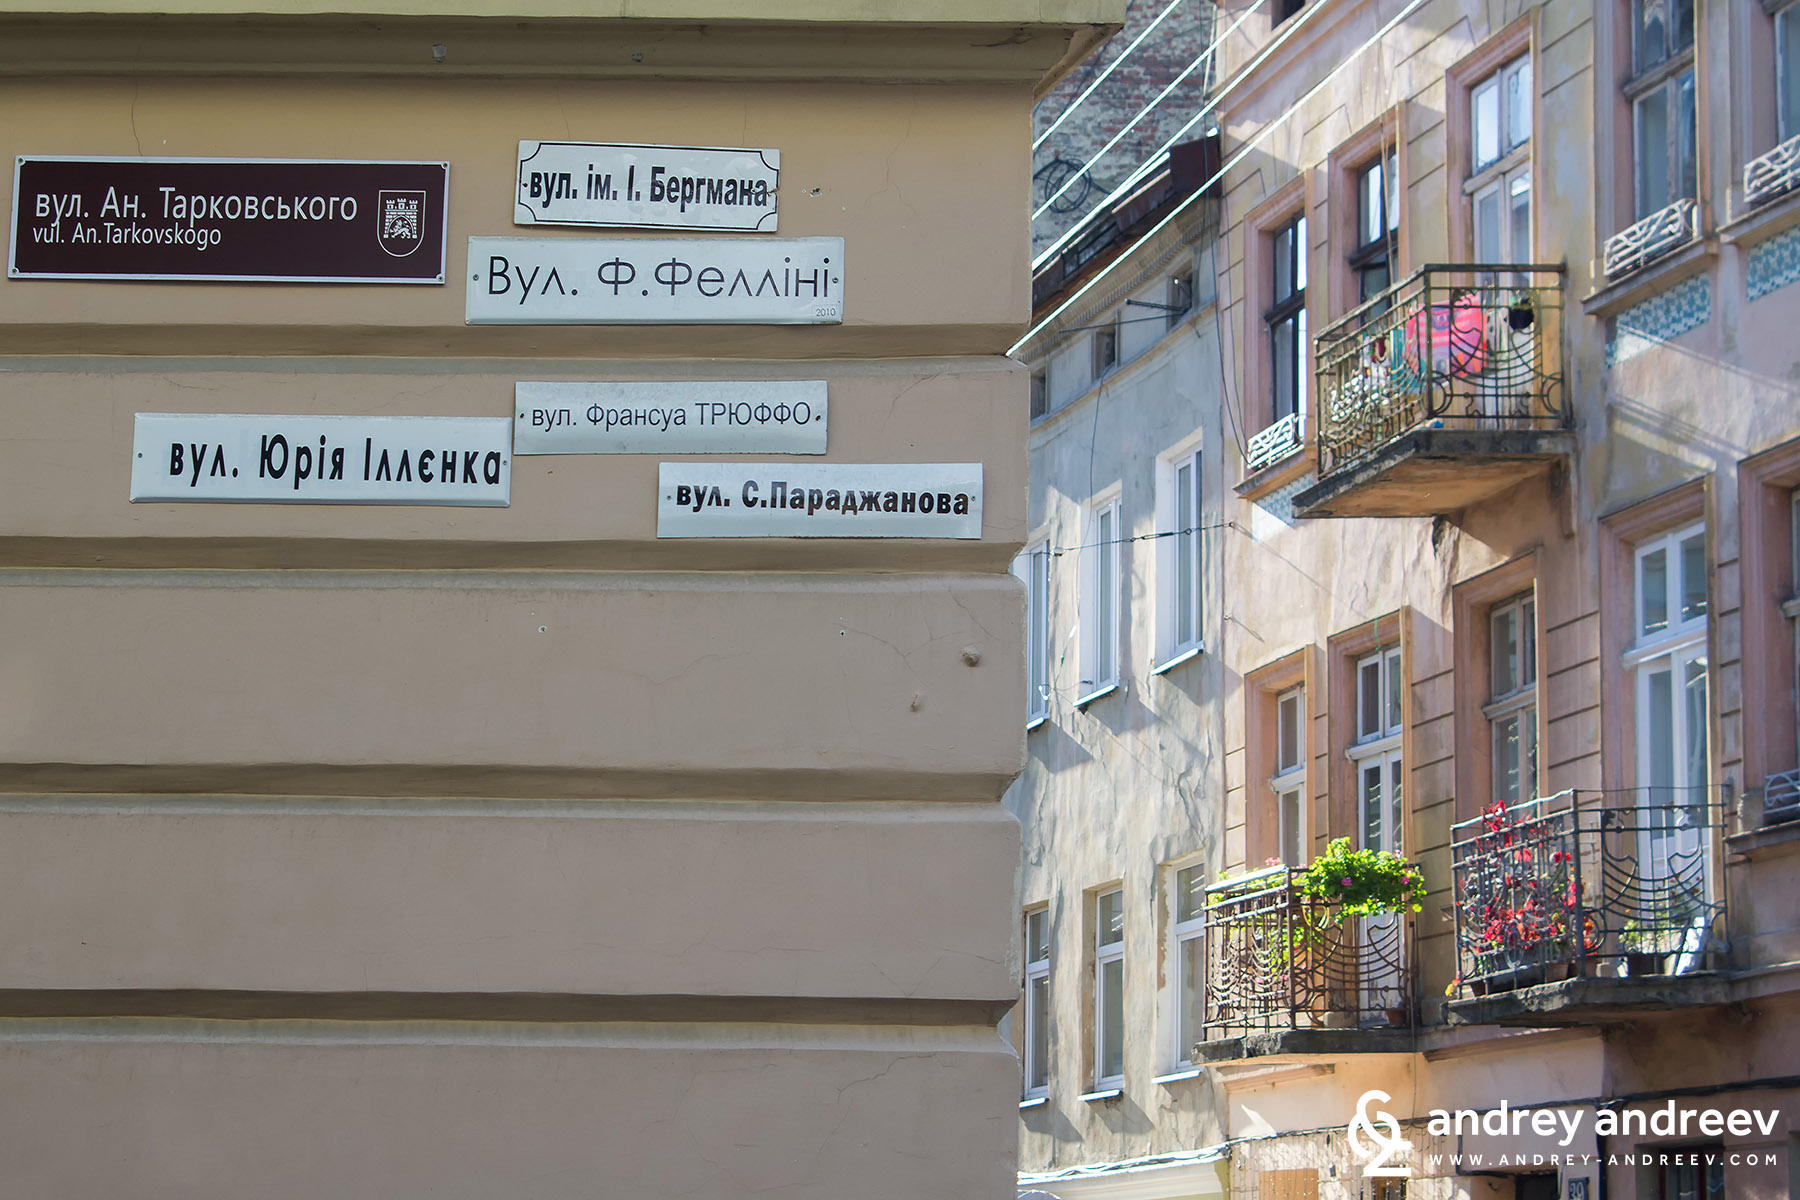 The street with many names - Lviv, Ukraine